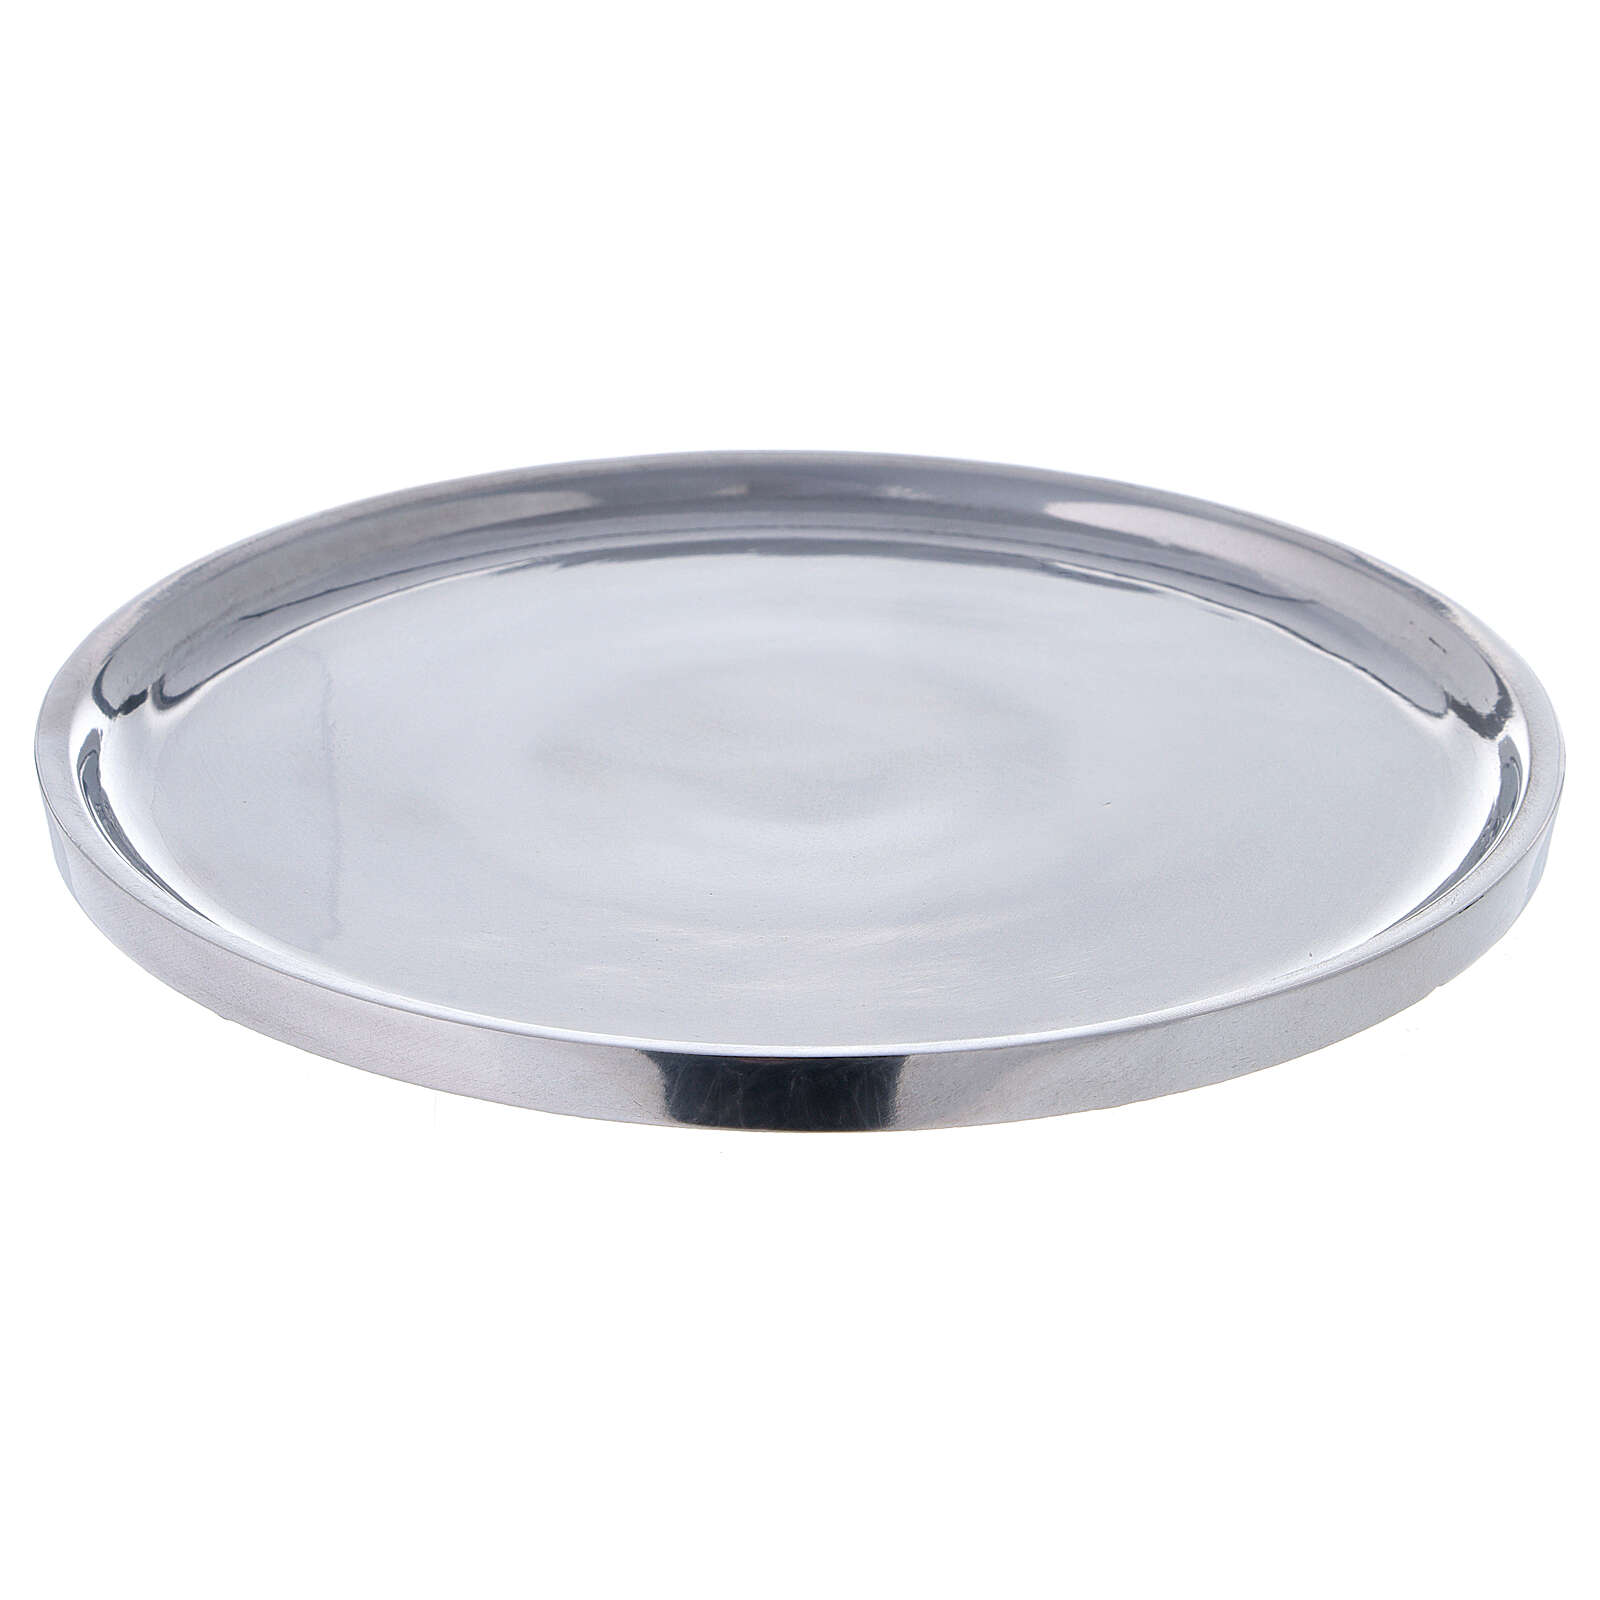 Polished aluminium plate for candles 7 1/2 in 3